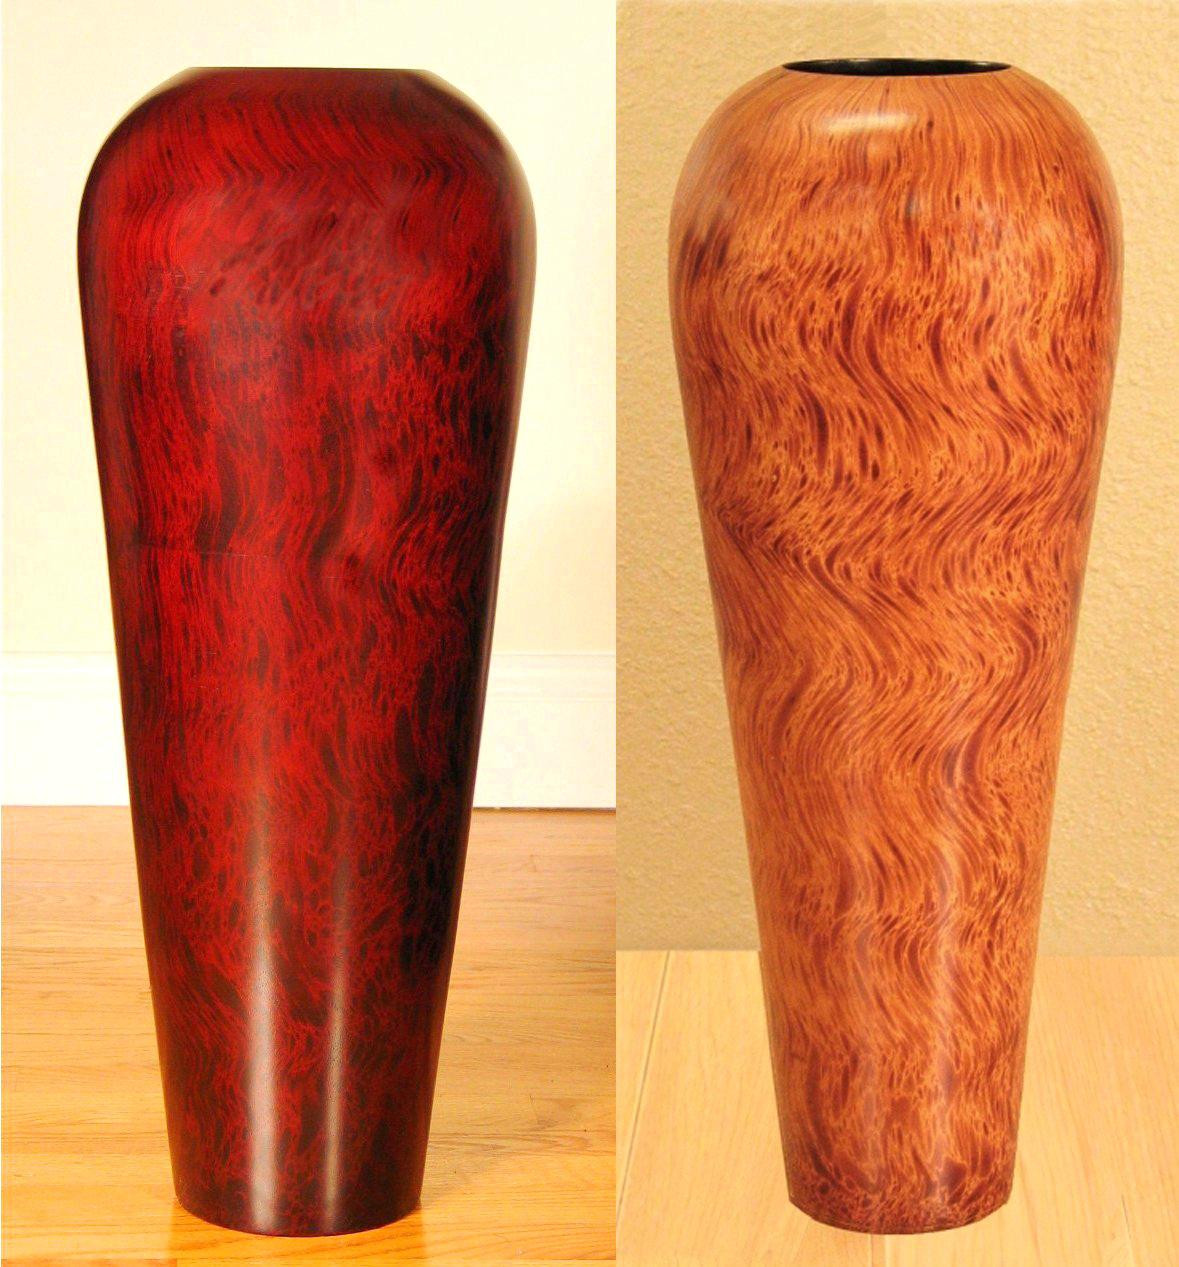 large red floor vase of large floor vase vases set of 3 for cheap with artificial flowers for large floor vase ideas vases for sale with flowers large floor vase